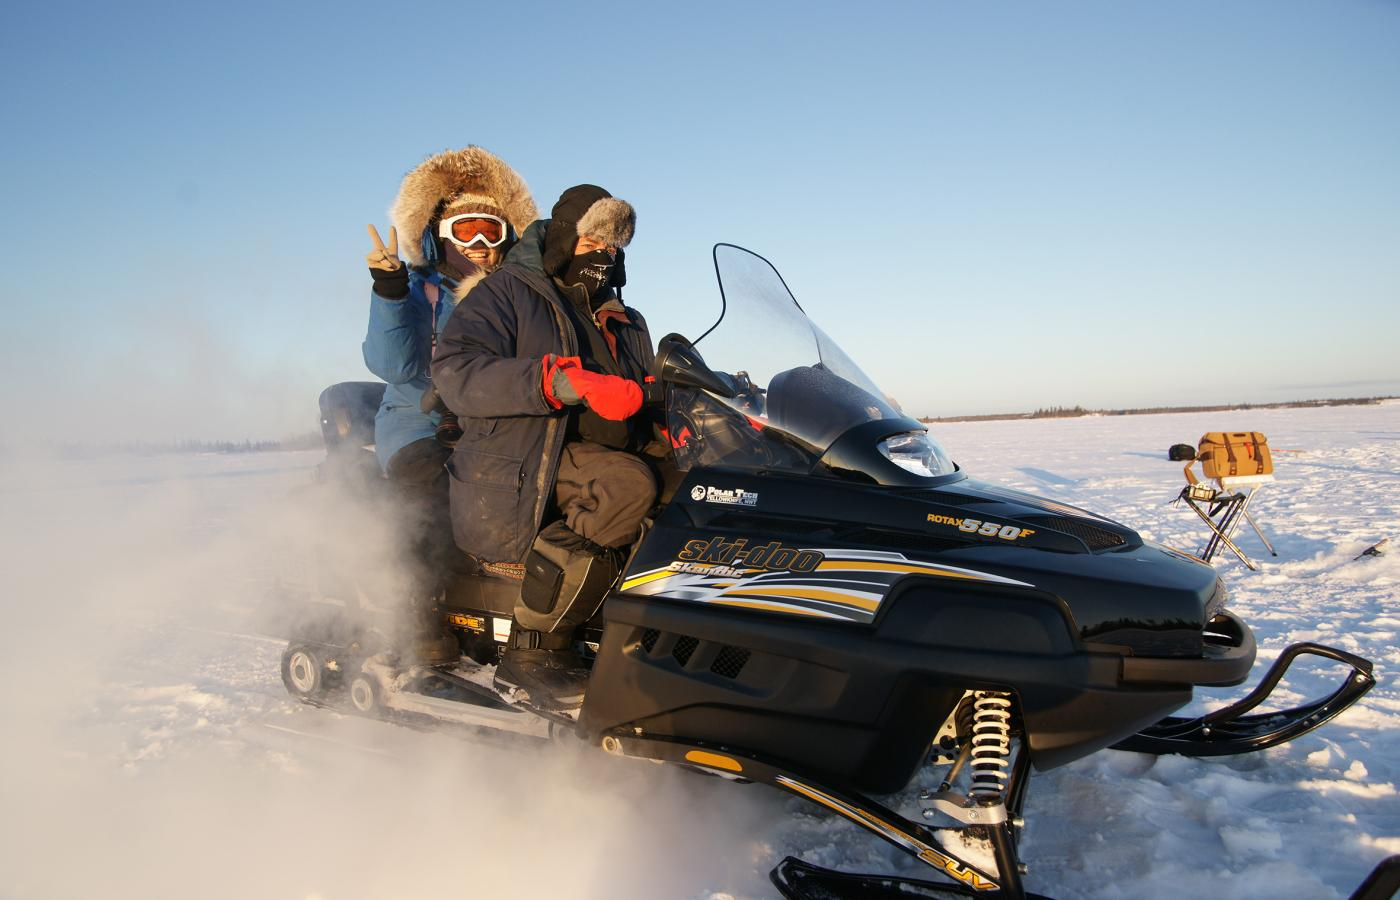 2 people enjoy a ride on a snowmobile in the Northwest territories